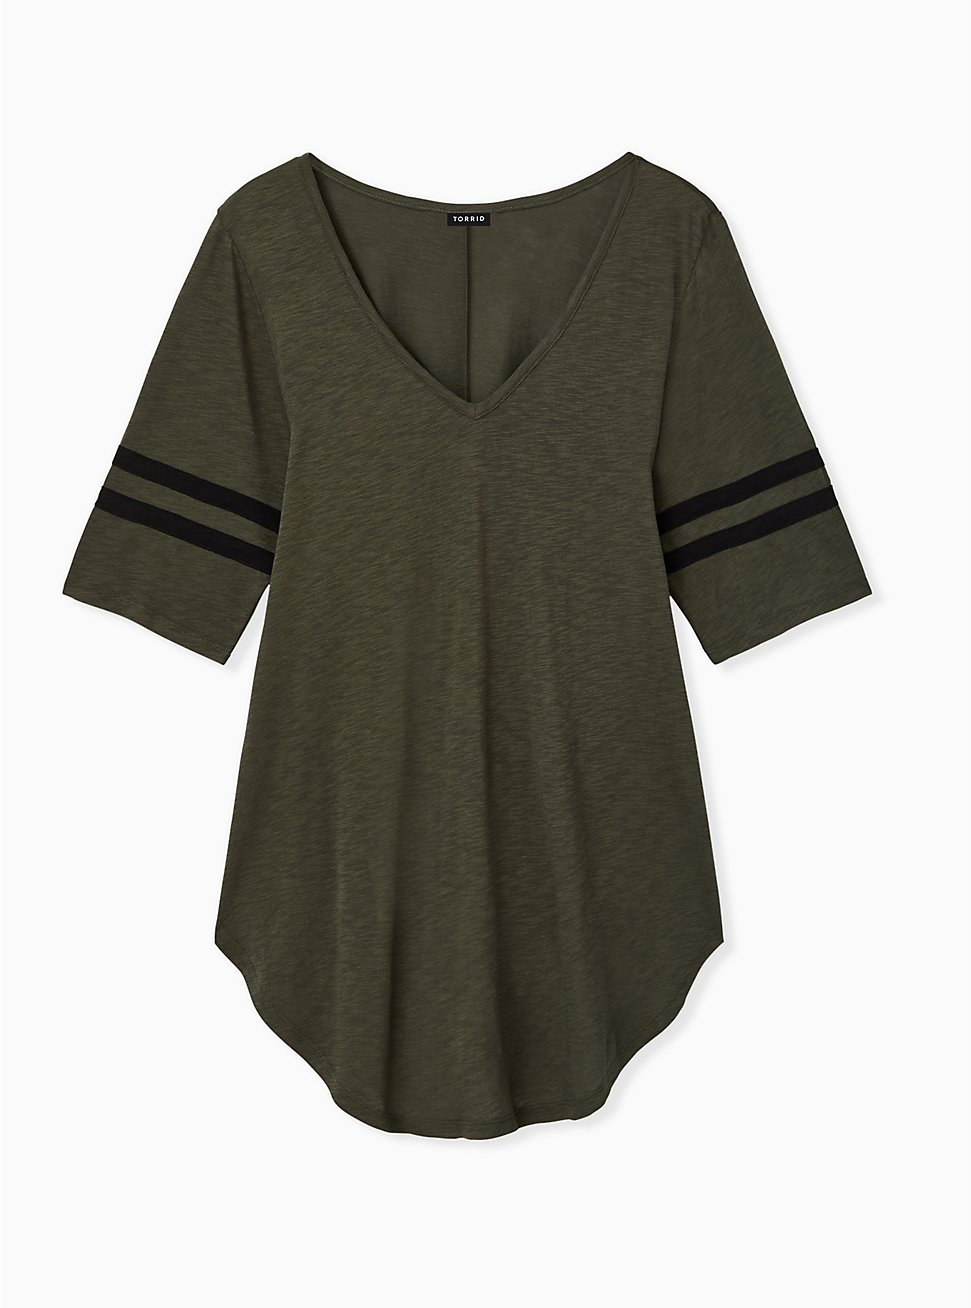 Plus Size Olive Green V-Neck Football Tunic Tee, DEEP DEPTHS, hi-res